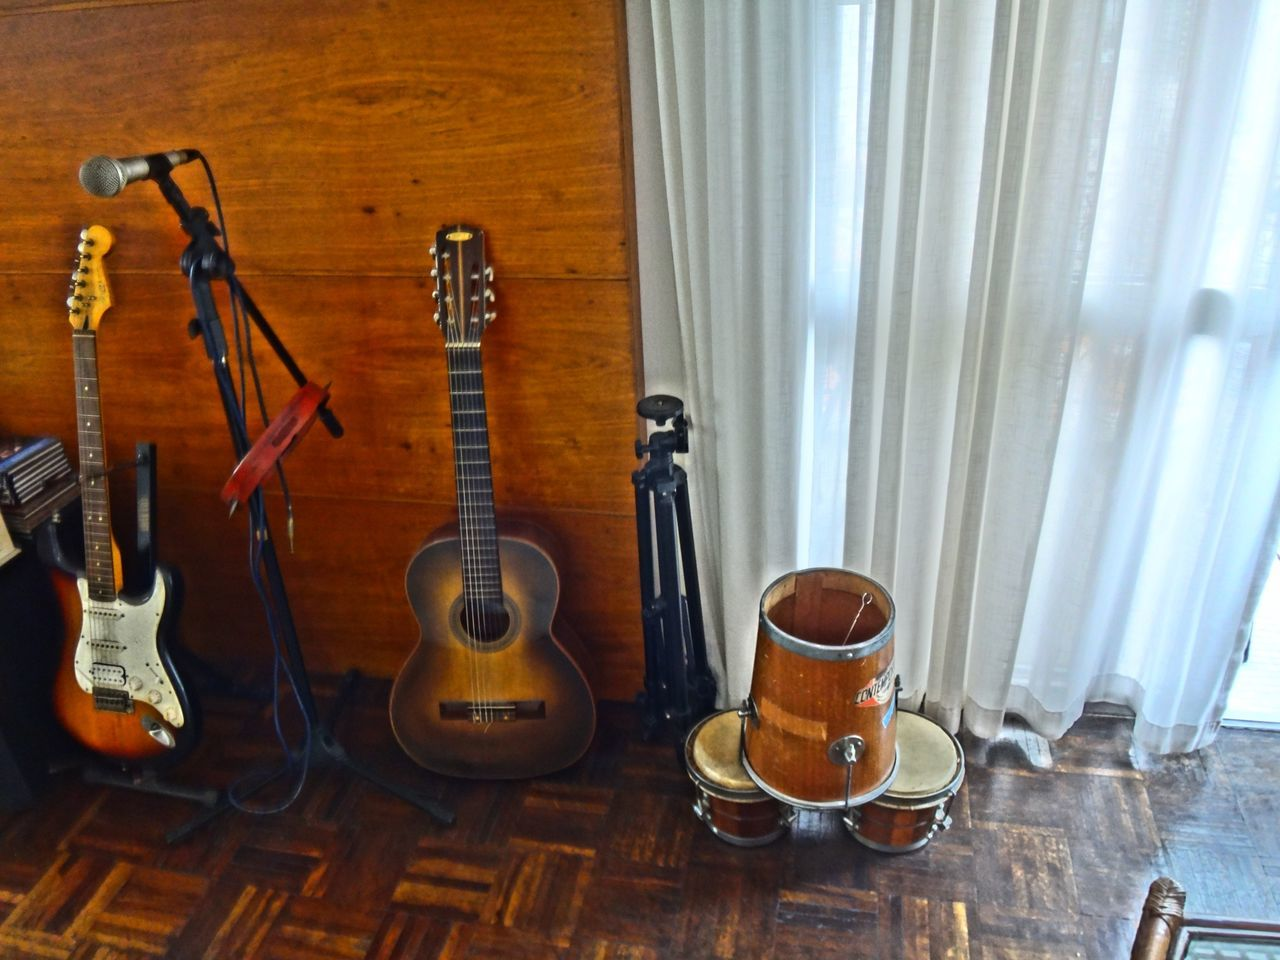 musical instrument, music, curtain, indoors, no people, window, guitar, day, arts culture and entertainment, hanging